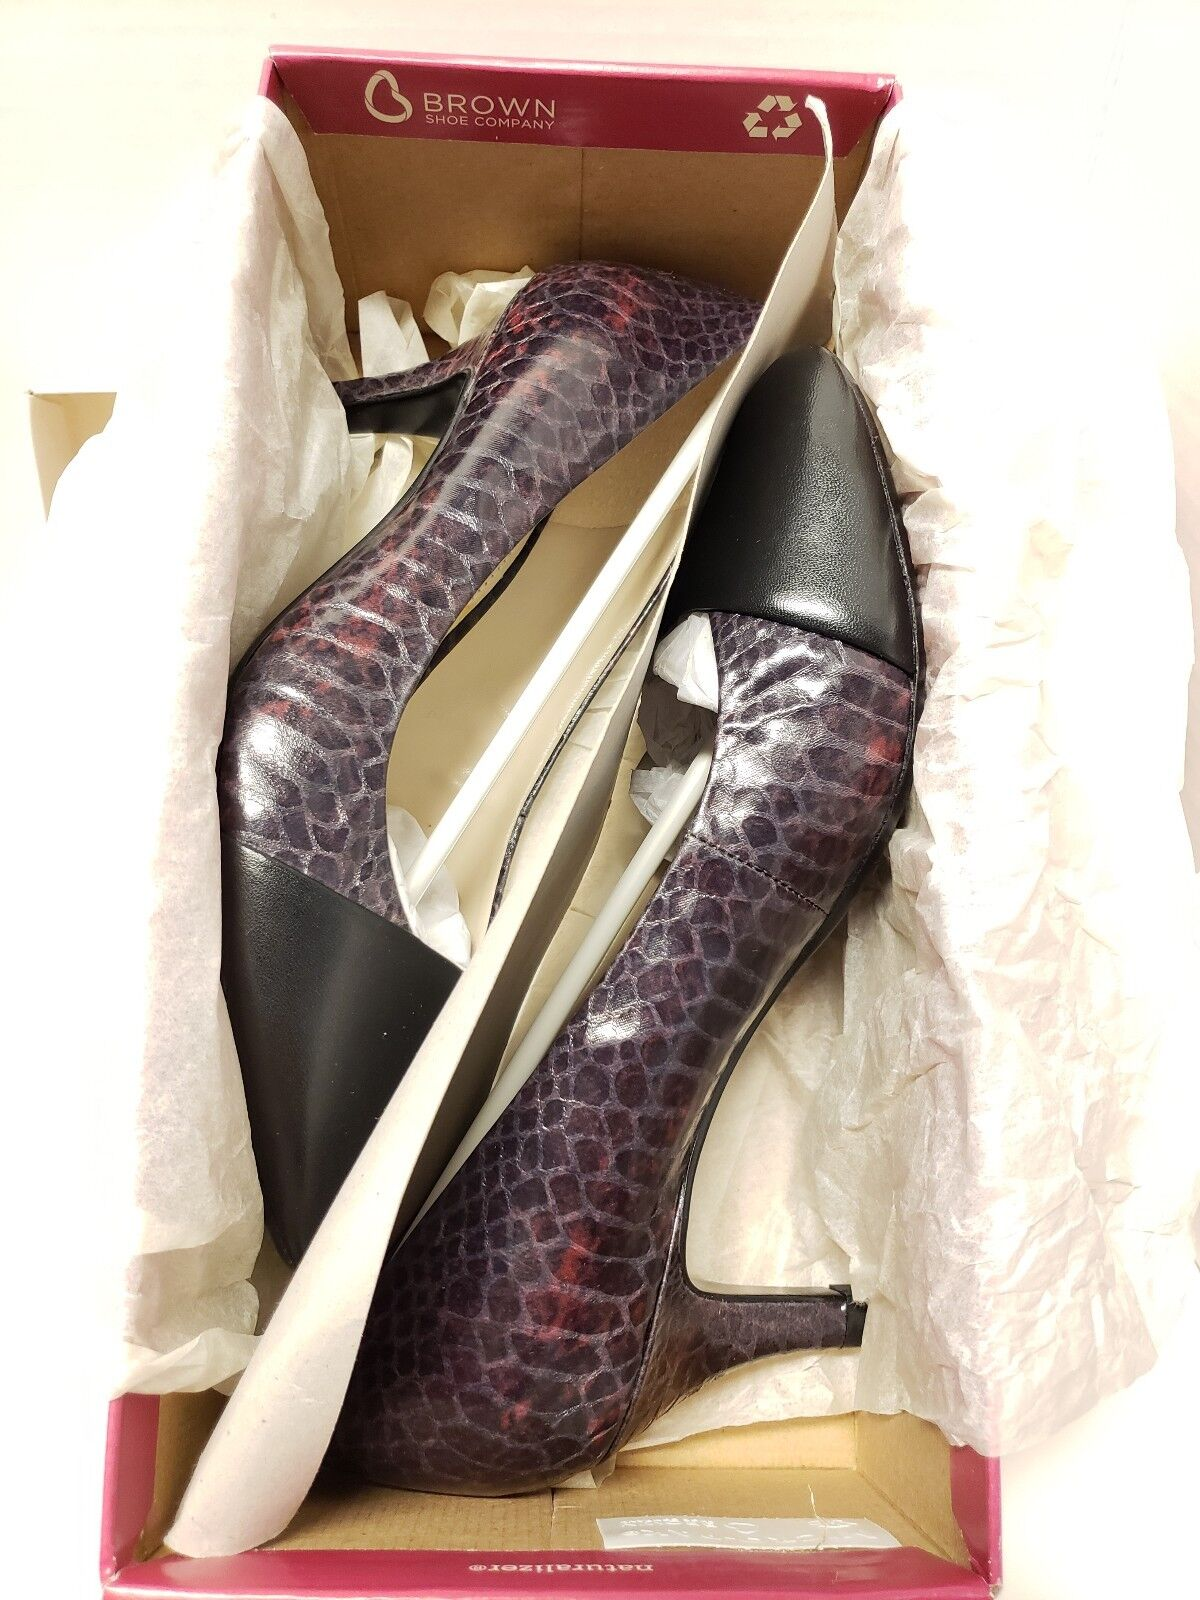 Naturalizer Gusta Snake Print Leather Heels Womens shoes shoes shoes 7.5 M Wine Black NEW b4483f